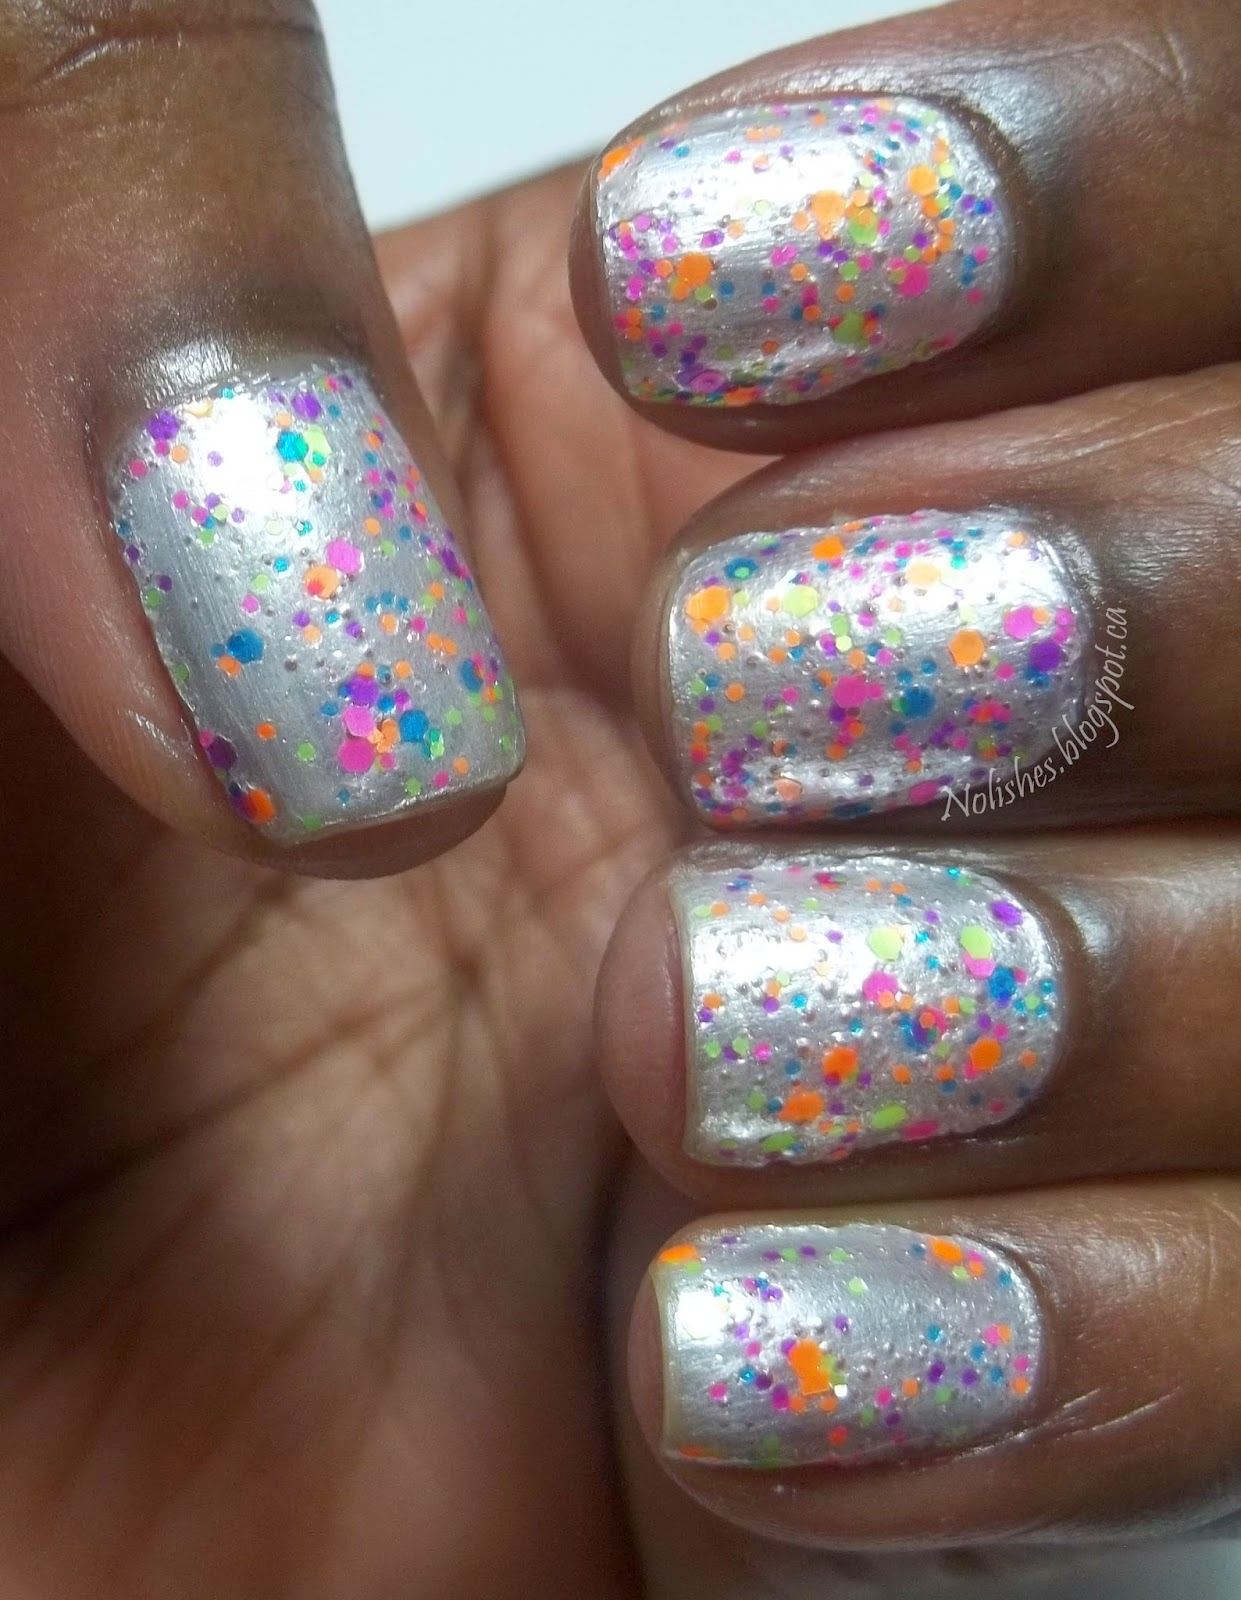 White frost base polish topped with silver micro glitter, and then a neon rainbow glitter